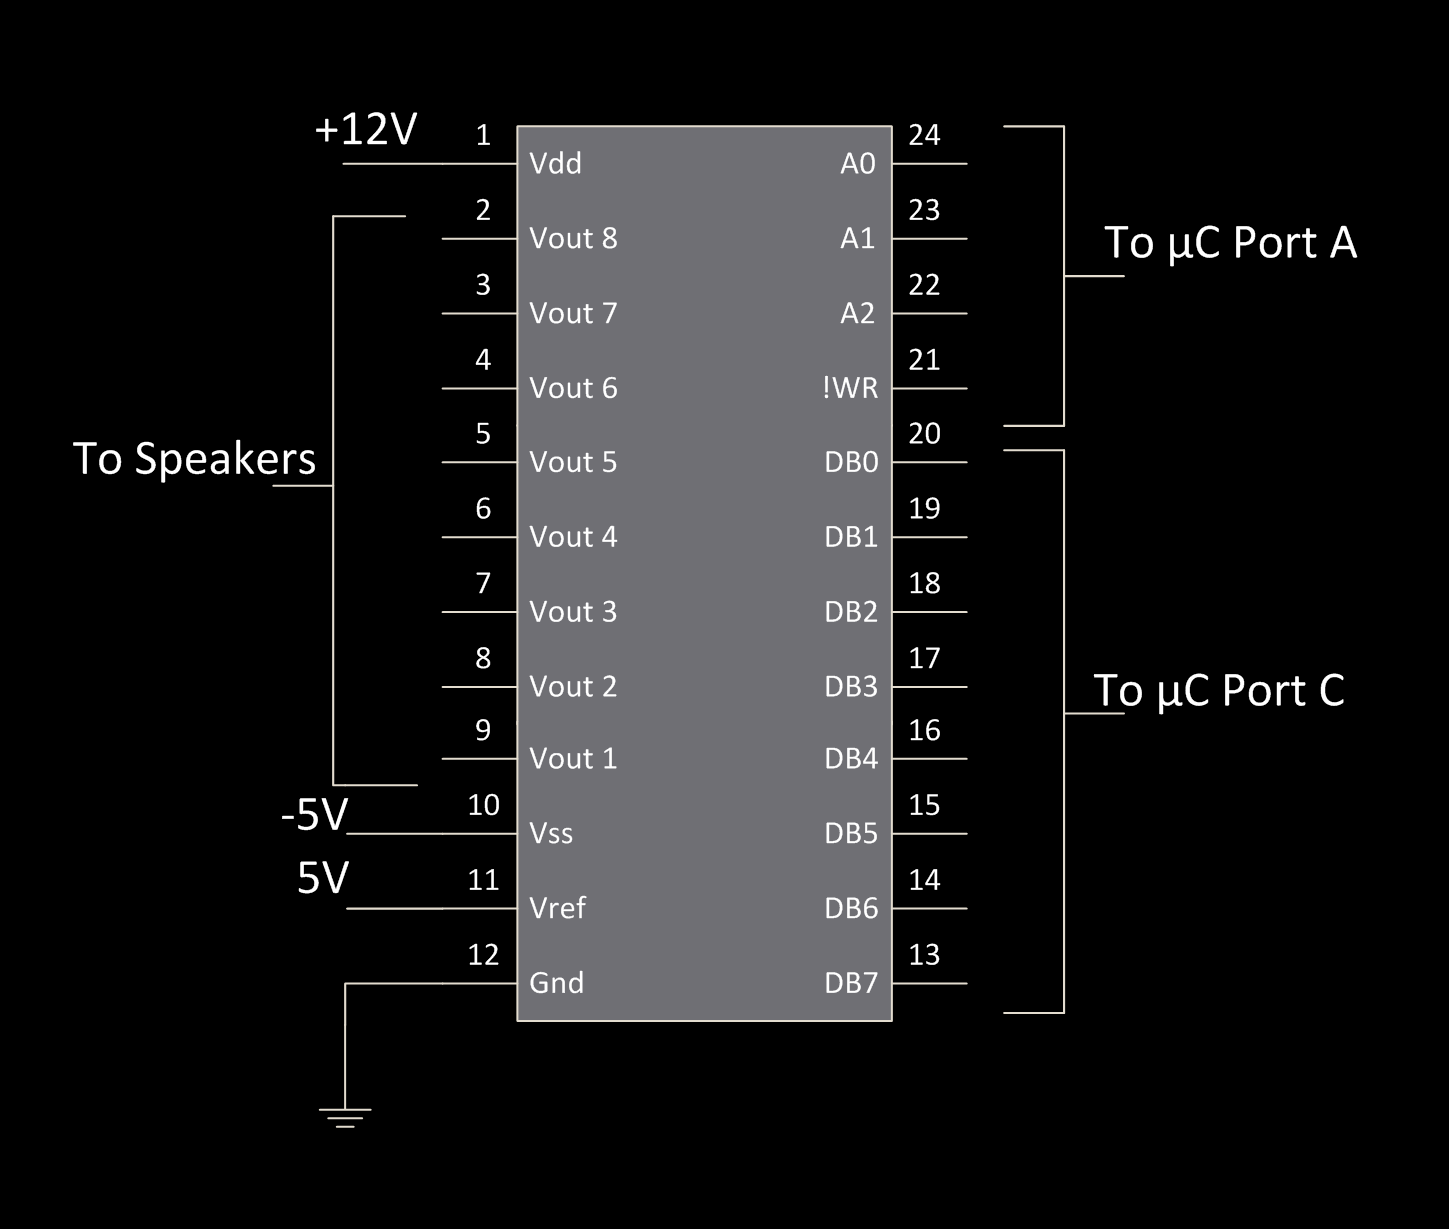 Ece 4760 Final Project Phased Array Speaker System Block Diagram Furthermore Pa Setup On Sound The Mx7228 Is A Parallel Dac What This Means Output Voltage Function Of 8 Bits Set To Db07 Given An Bit Value X Sets